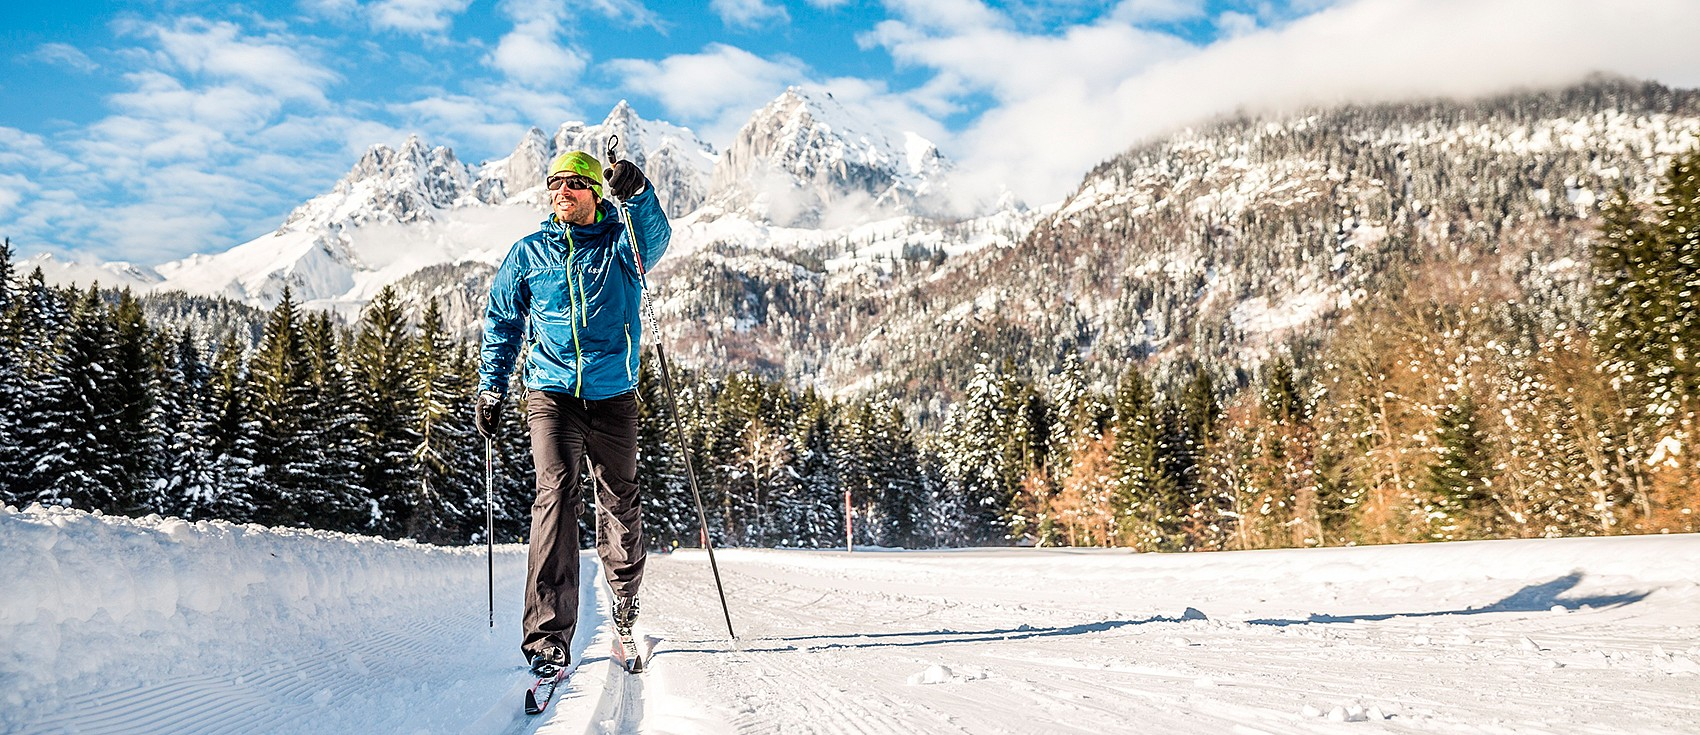 Cross-country skiing holidays in the hotel Kitzspitz